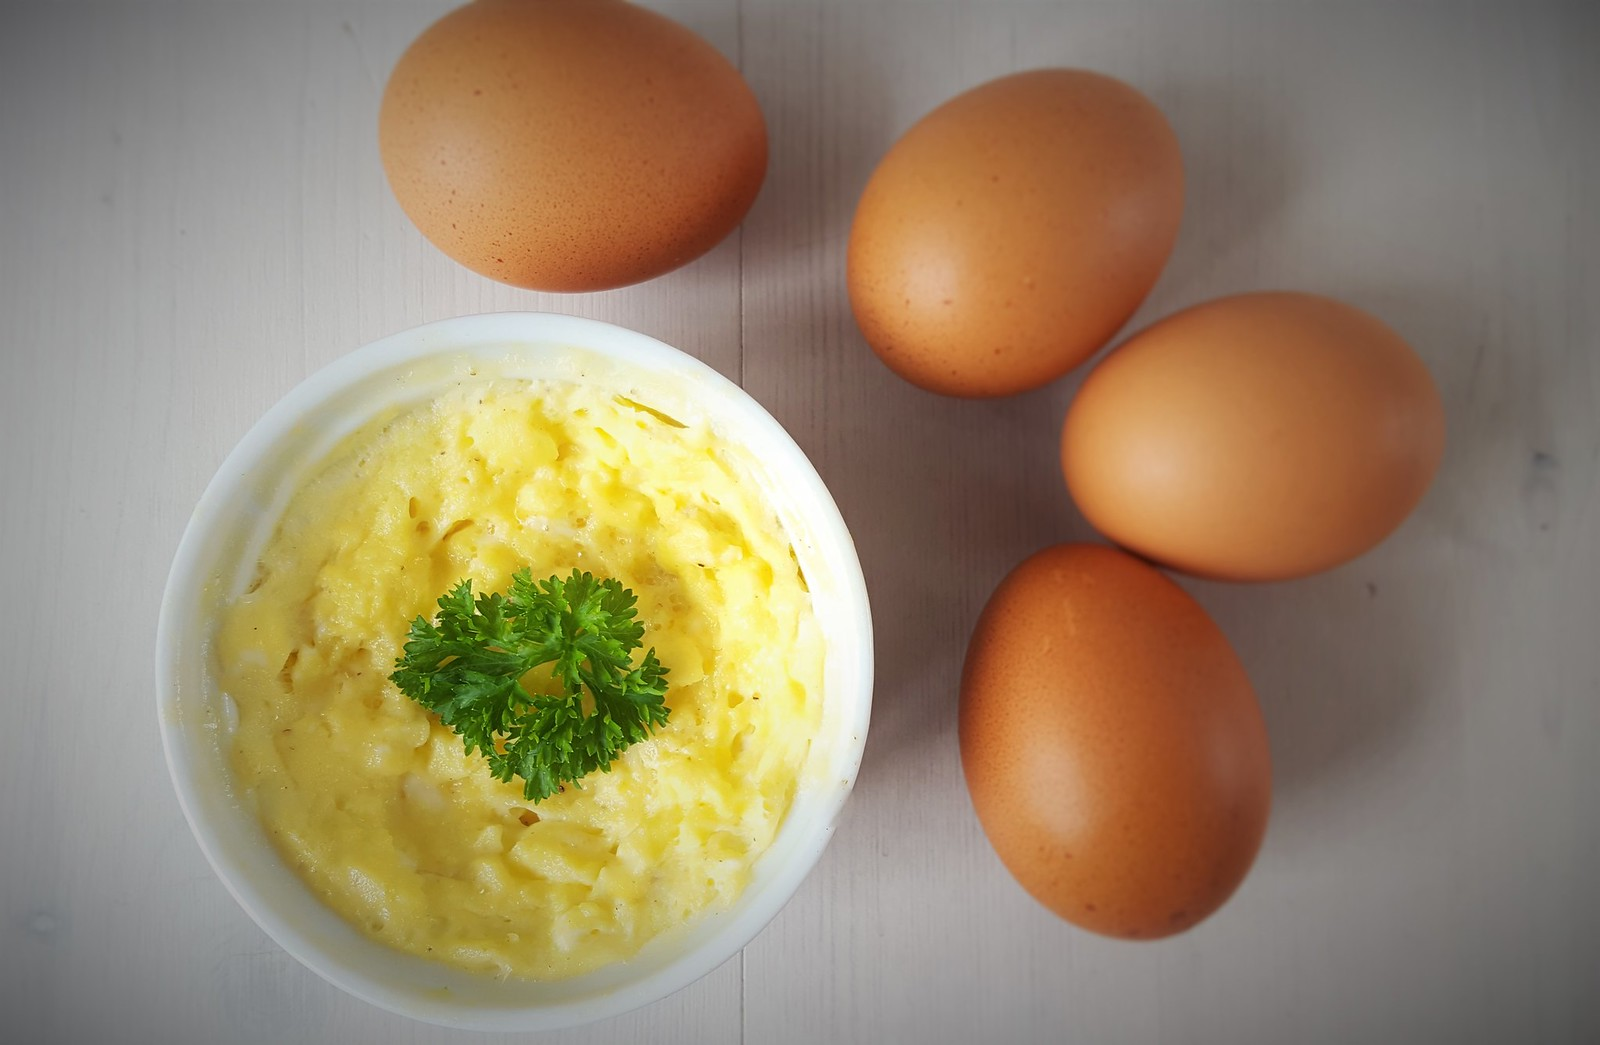 Microwave Scrambled Eggs The Super Easy Way Nordic Food Living